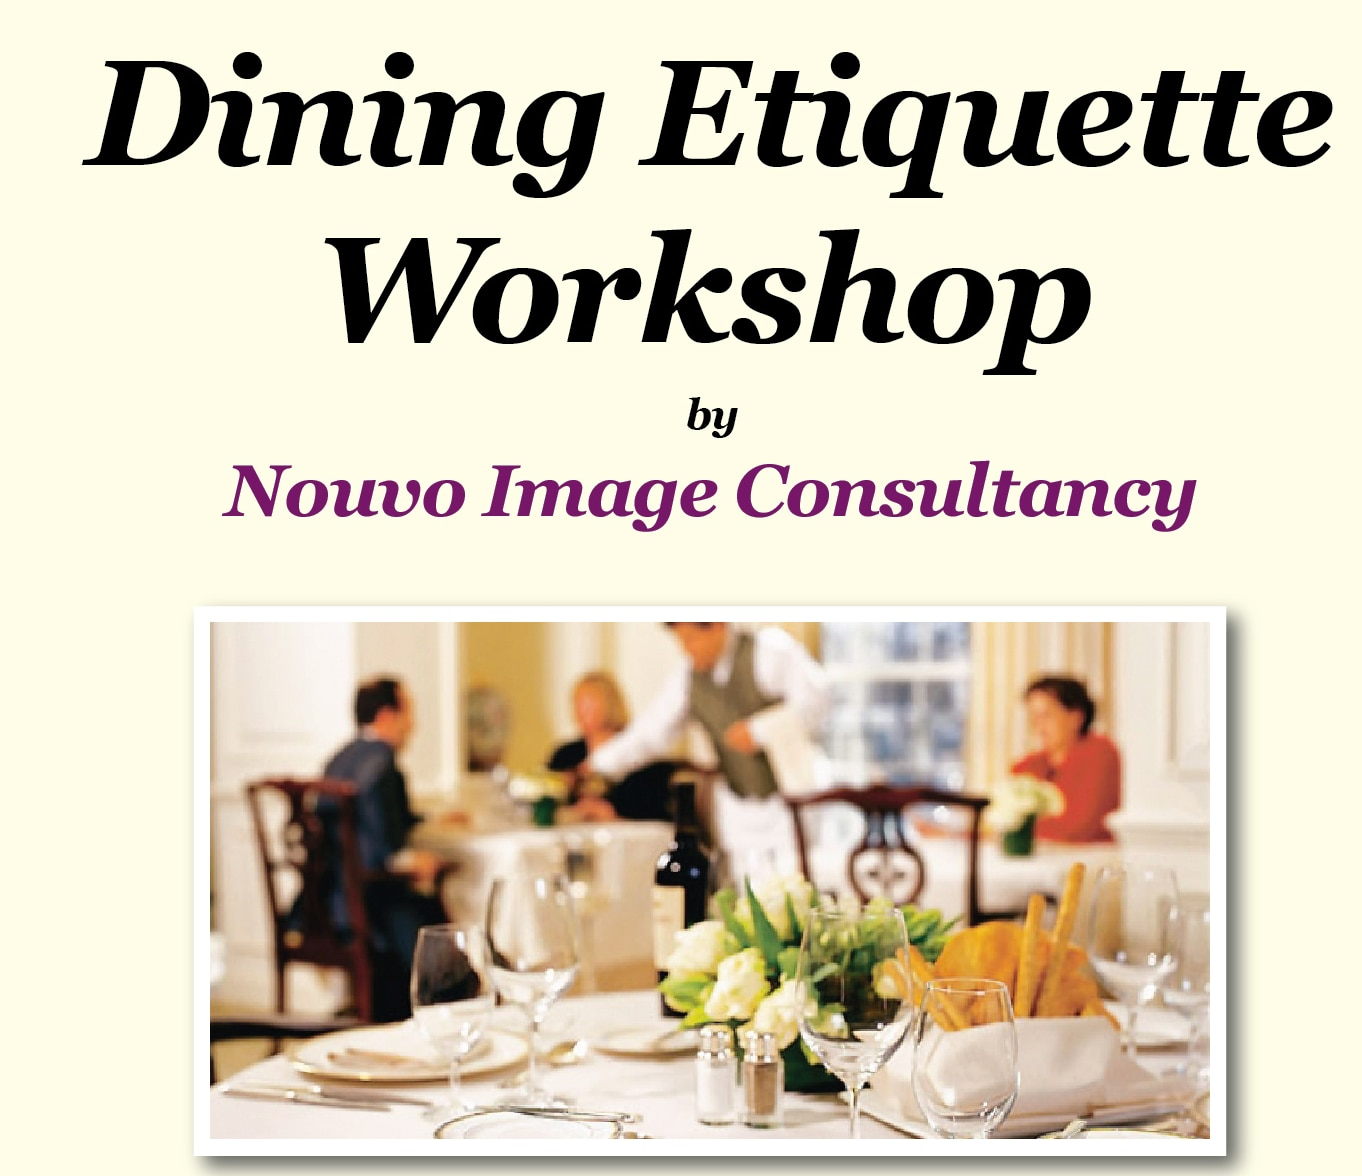 Dining Etiquette workshop In Bangalore On 21st February 2016  Learn dining etiquette that will take you anywhere... from a formal dinner to a cocktail party, to a business lunch or to a dinner with friends. You will learn the most sophisticated style of formal dining and be able to apply it to contemporary dining. All the fine points of dining etiquette will be covered and you can see actual demonstration. Participants will be served a five-course meal.  Time – 11.30 p.m. to 2.30 p.m.  Venue – Nouvo Image Consultancy Office, Indiranagar Workshop Fees  –    Rs 2500/- For registrations contact - 9845431488  